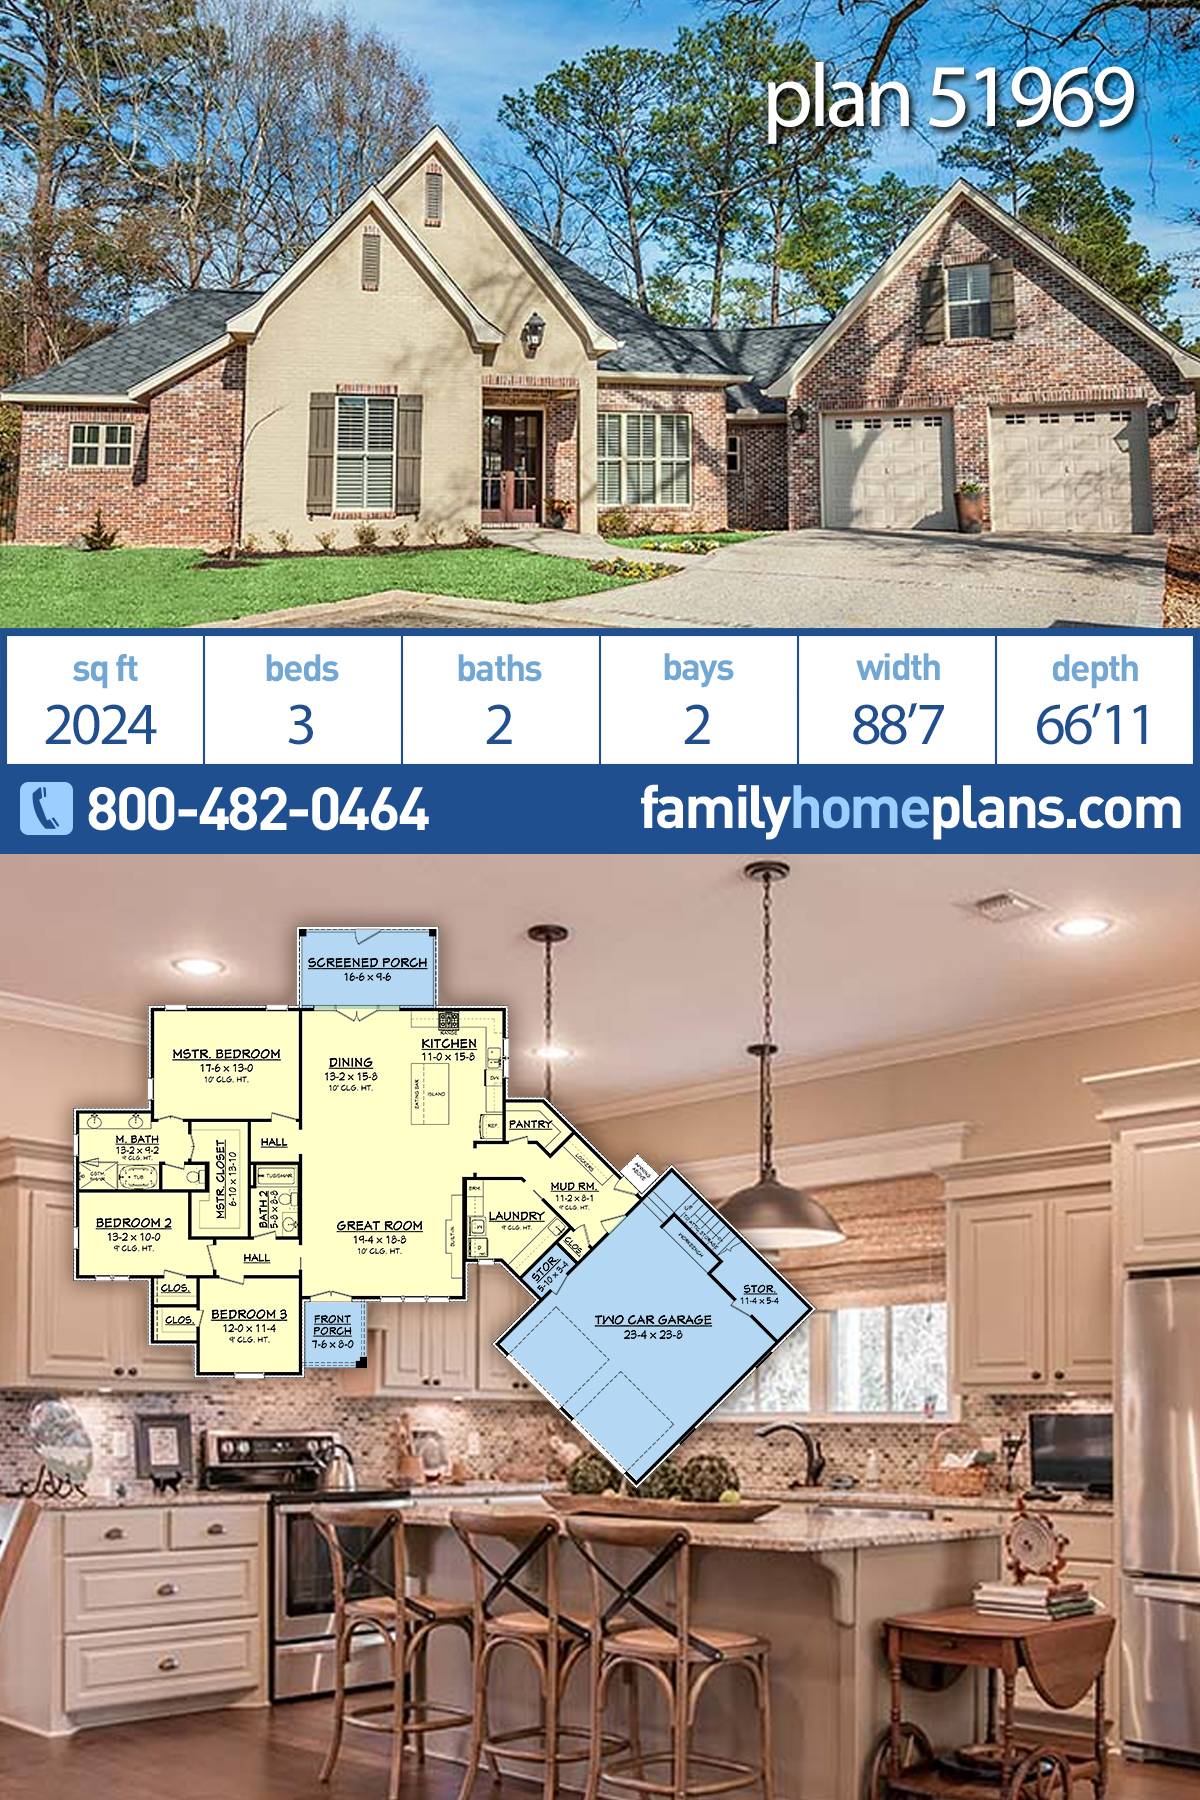 Country, French Country, Traditional House Plan 51969 with 3 Beds, 2 Baths, 2 Car Garage